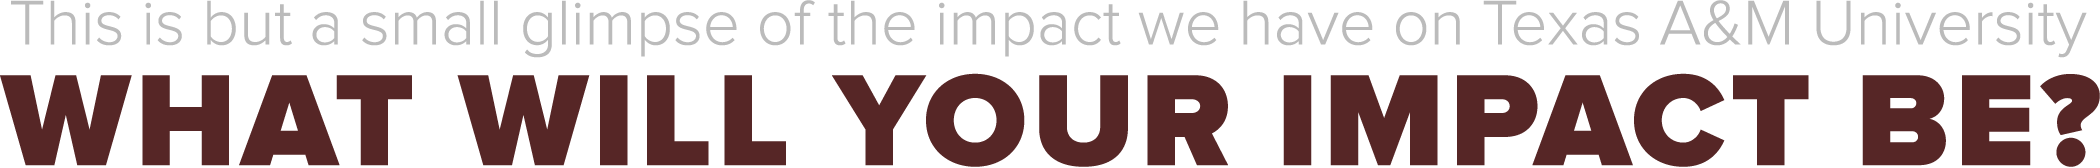 This is but a small glimpse of the impact we have on Texas A&M University. What will your impact be?